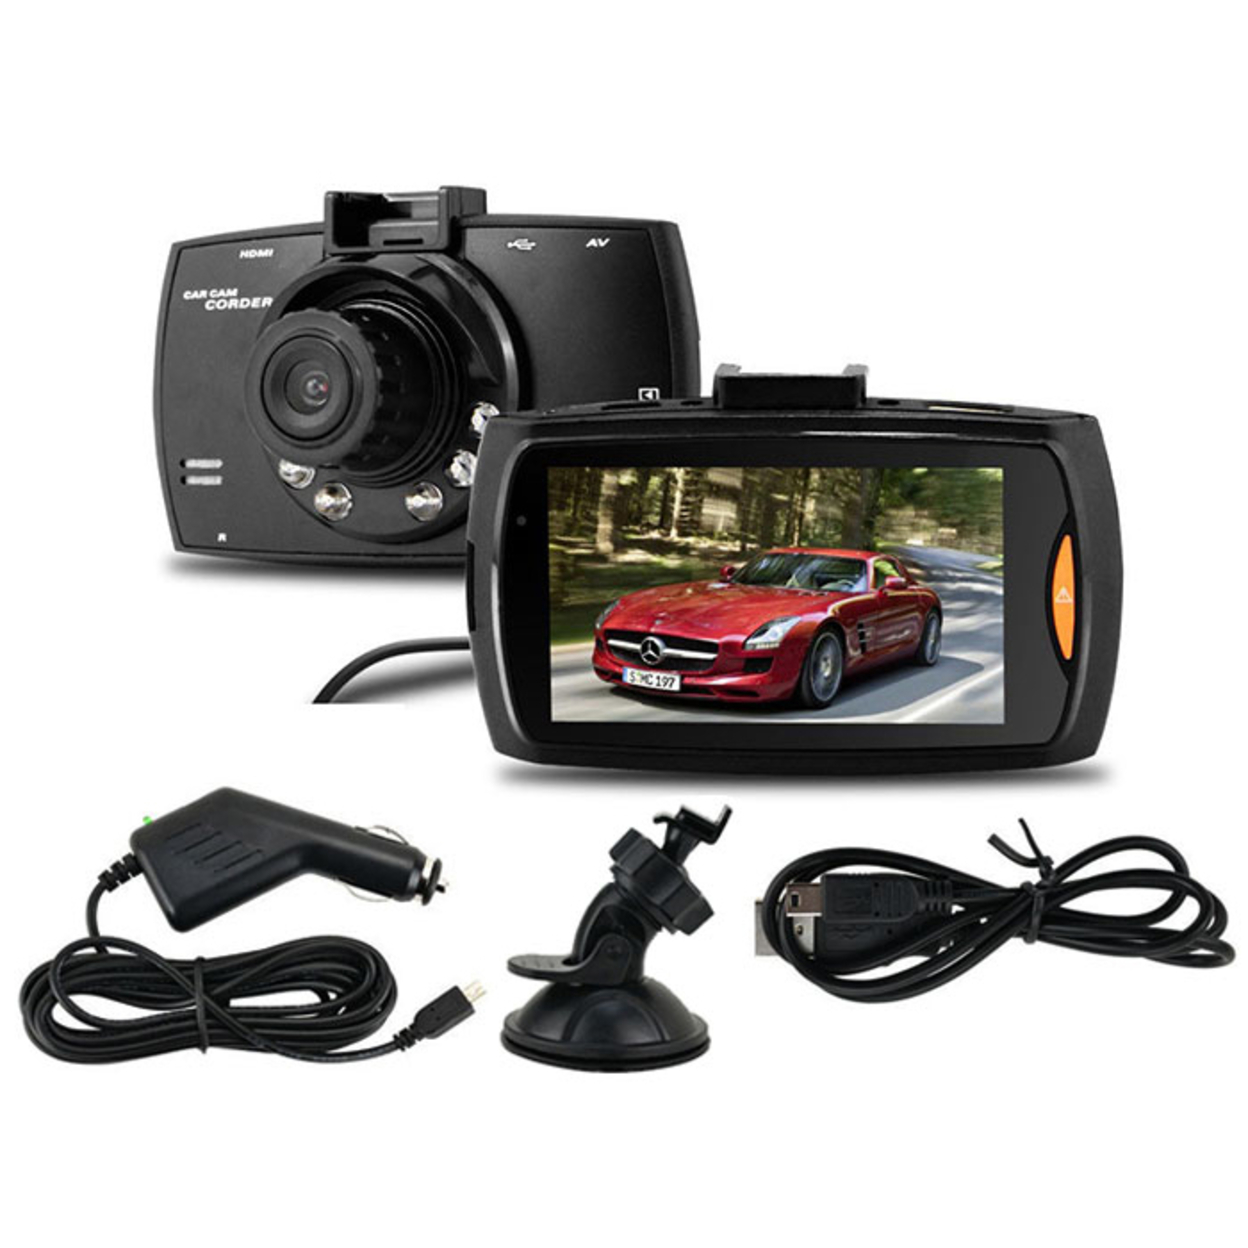 HD Dash Camera with 2.7'' LCD Screen, G-Sensor & 160° Wide Angle Lens - Includes Car Charger & Suction Cup Mount 565f7953913d6fa8048b460e